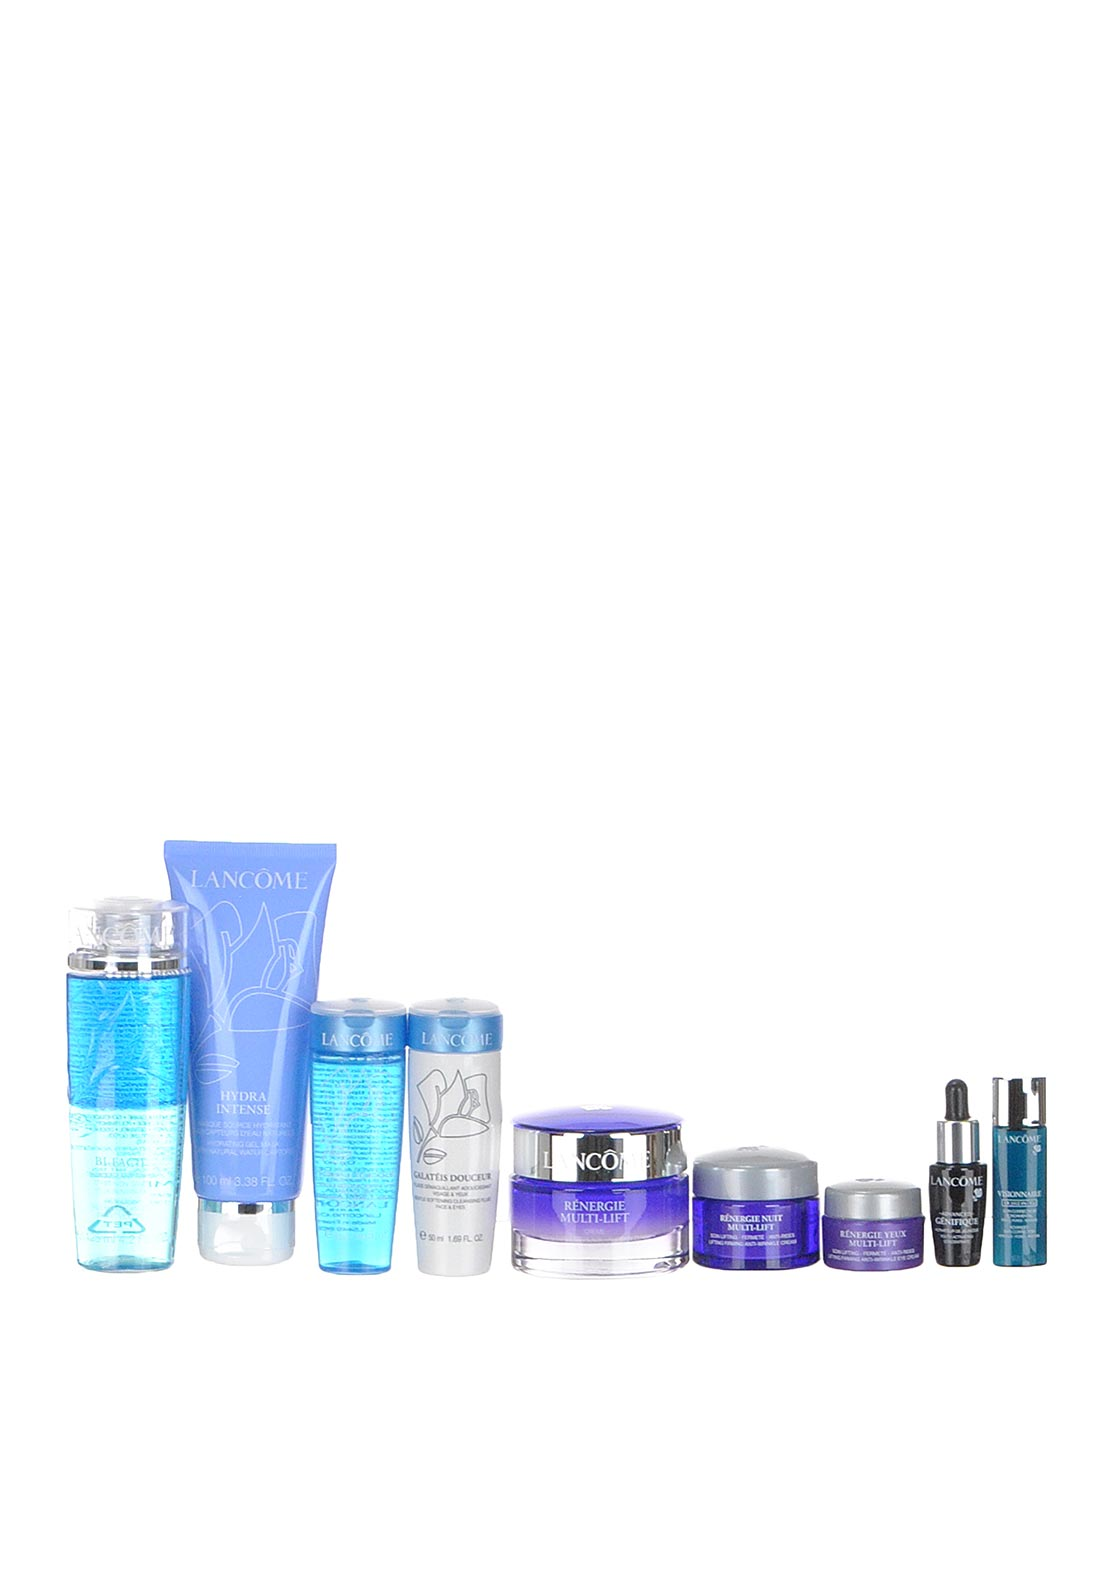 Lancome Renergie Multi-Life Limited Edition Skincare Set